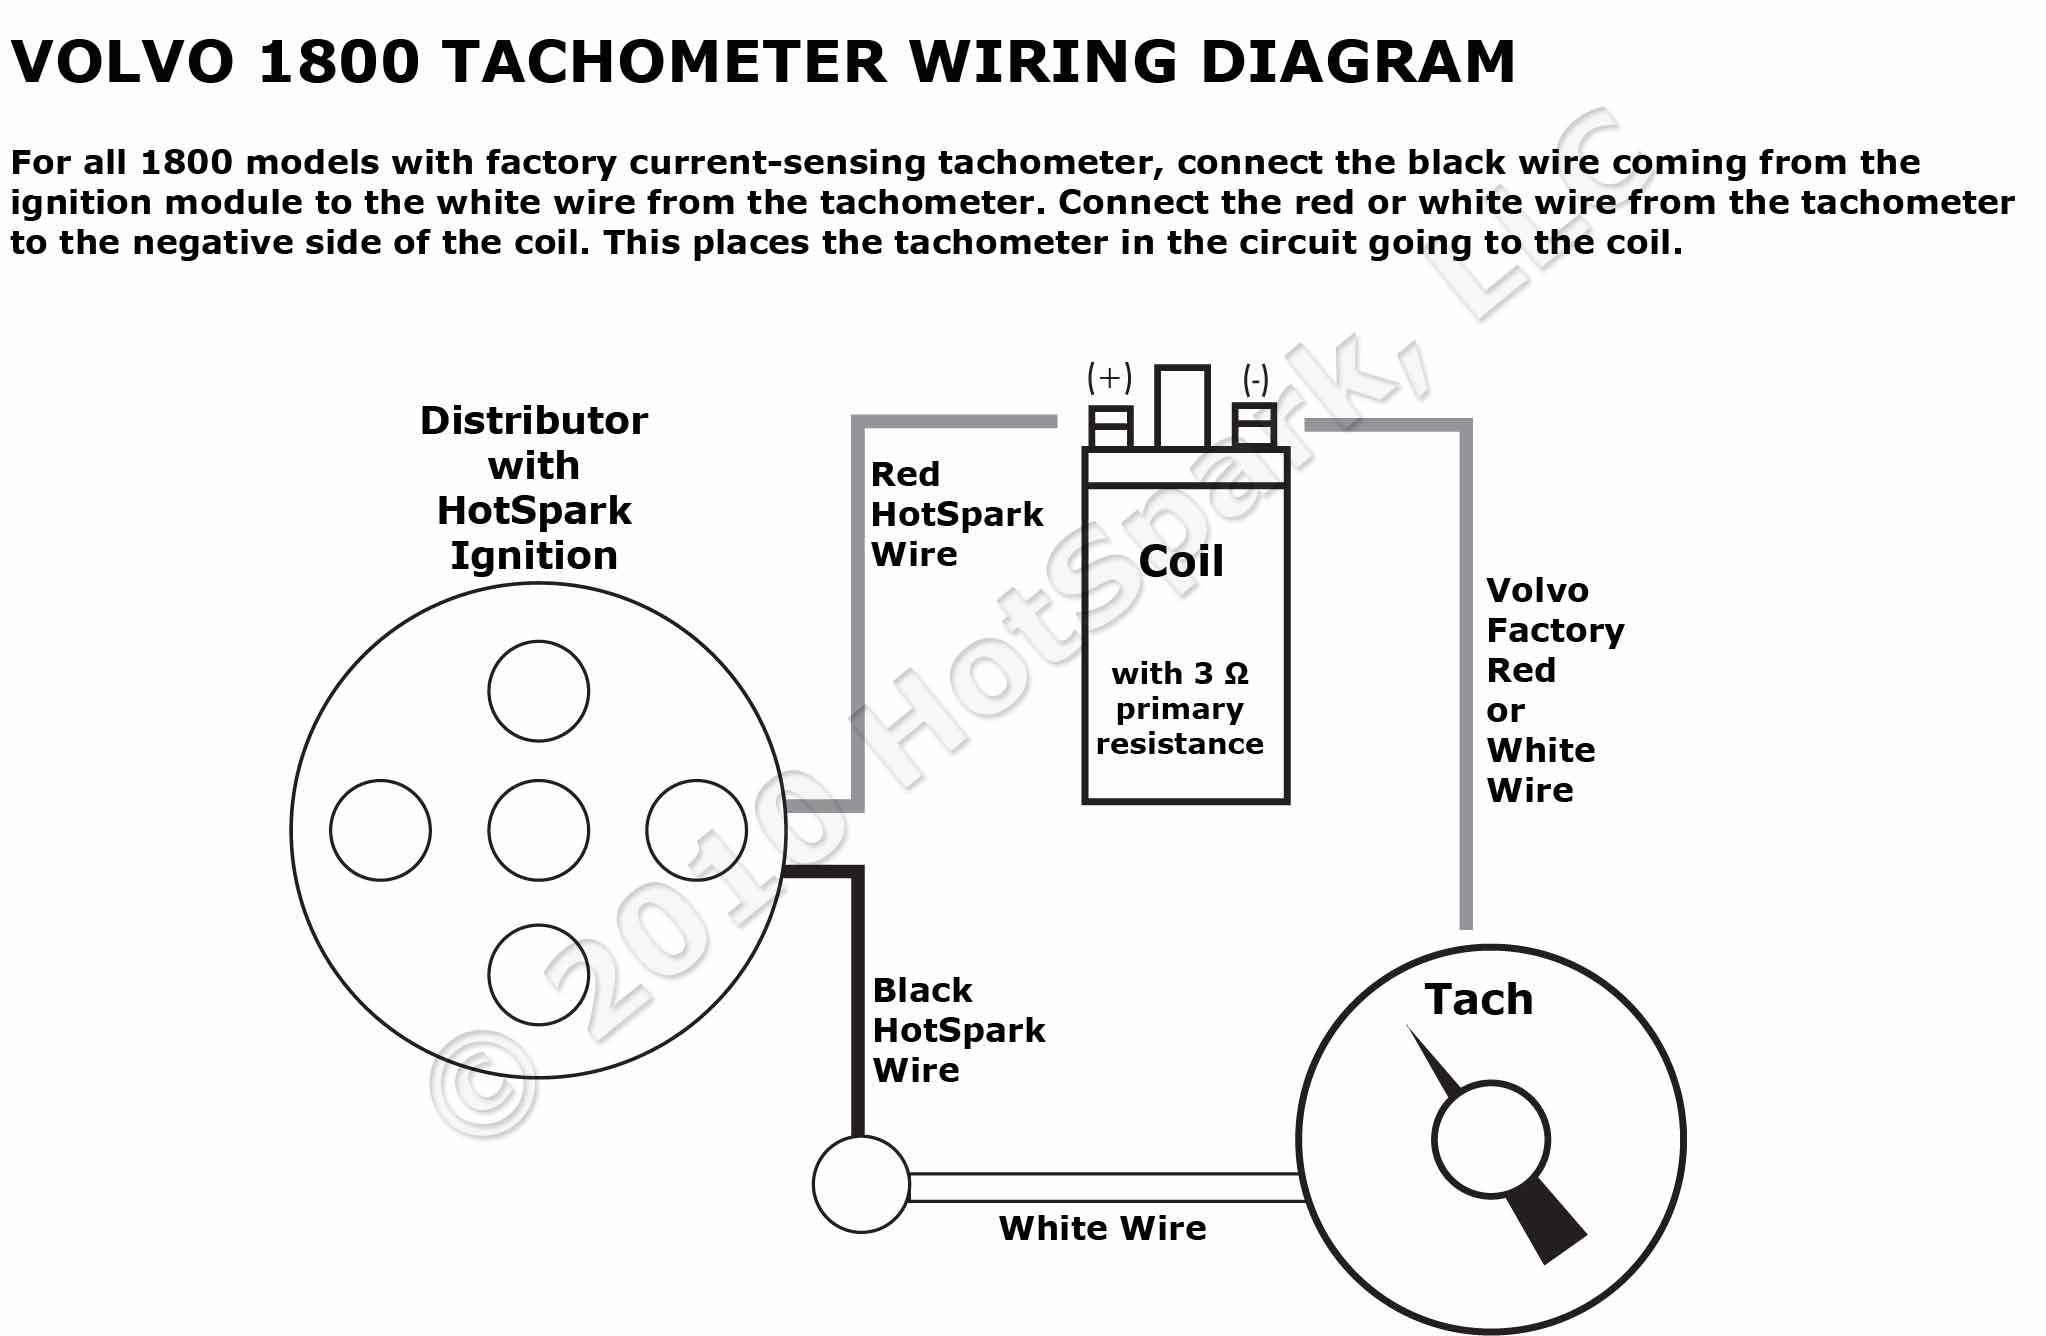 Volvo 1800 Tachometer and Hot Spark Wiring Diagram volvo 1800 tachometer wiring diagram with hotspark ignition tachometer wiring diagram at readyjetset.co